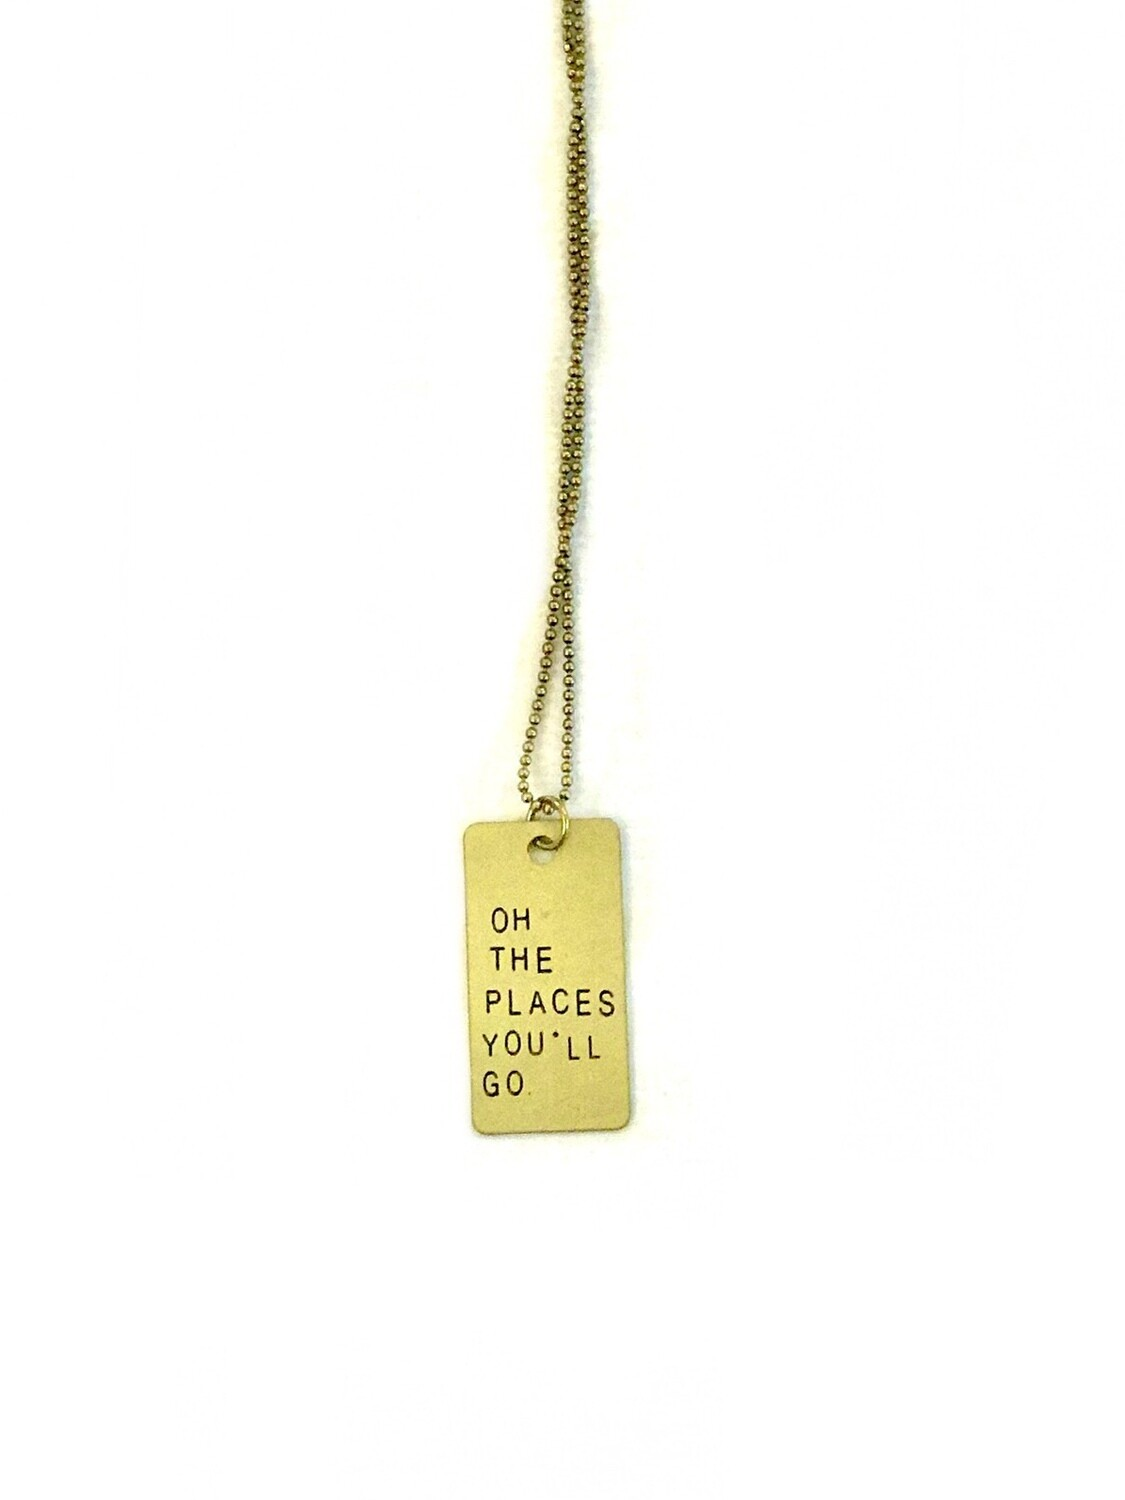 Oh the places necklace